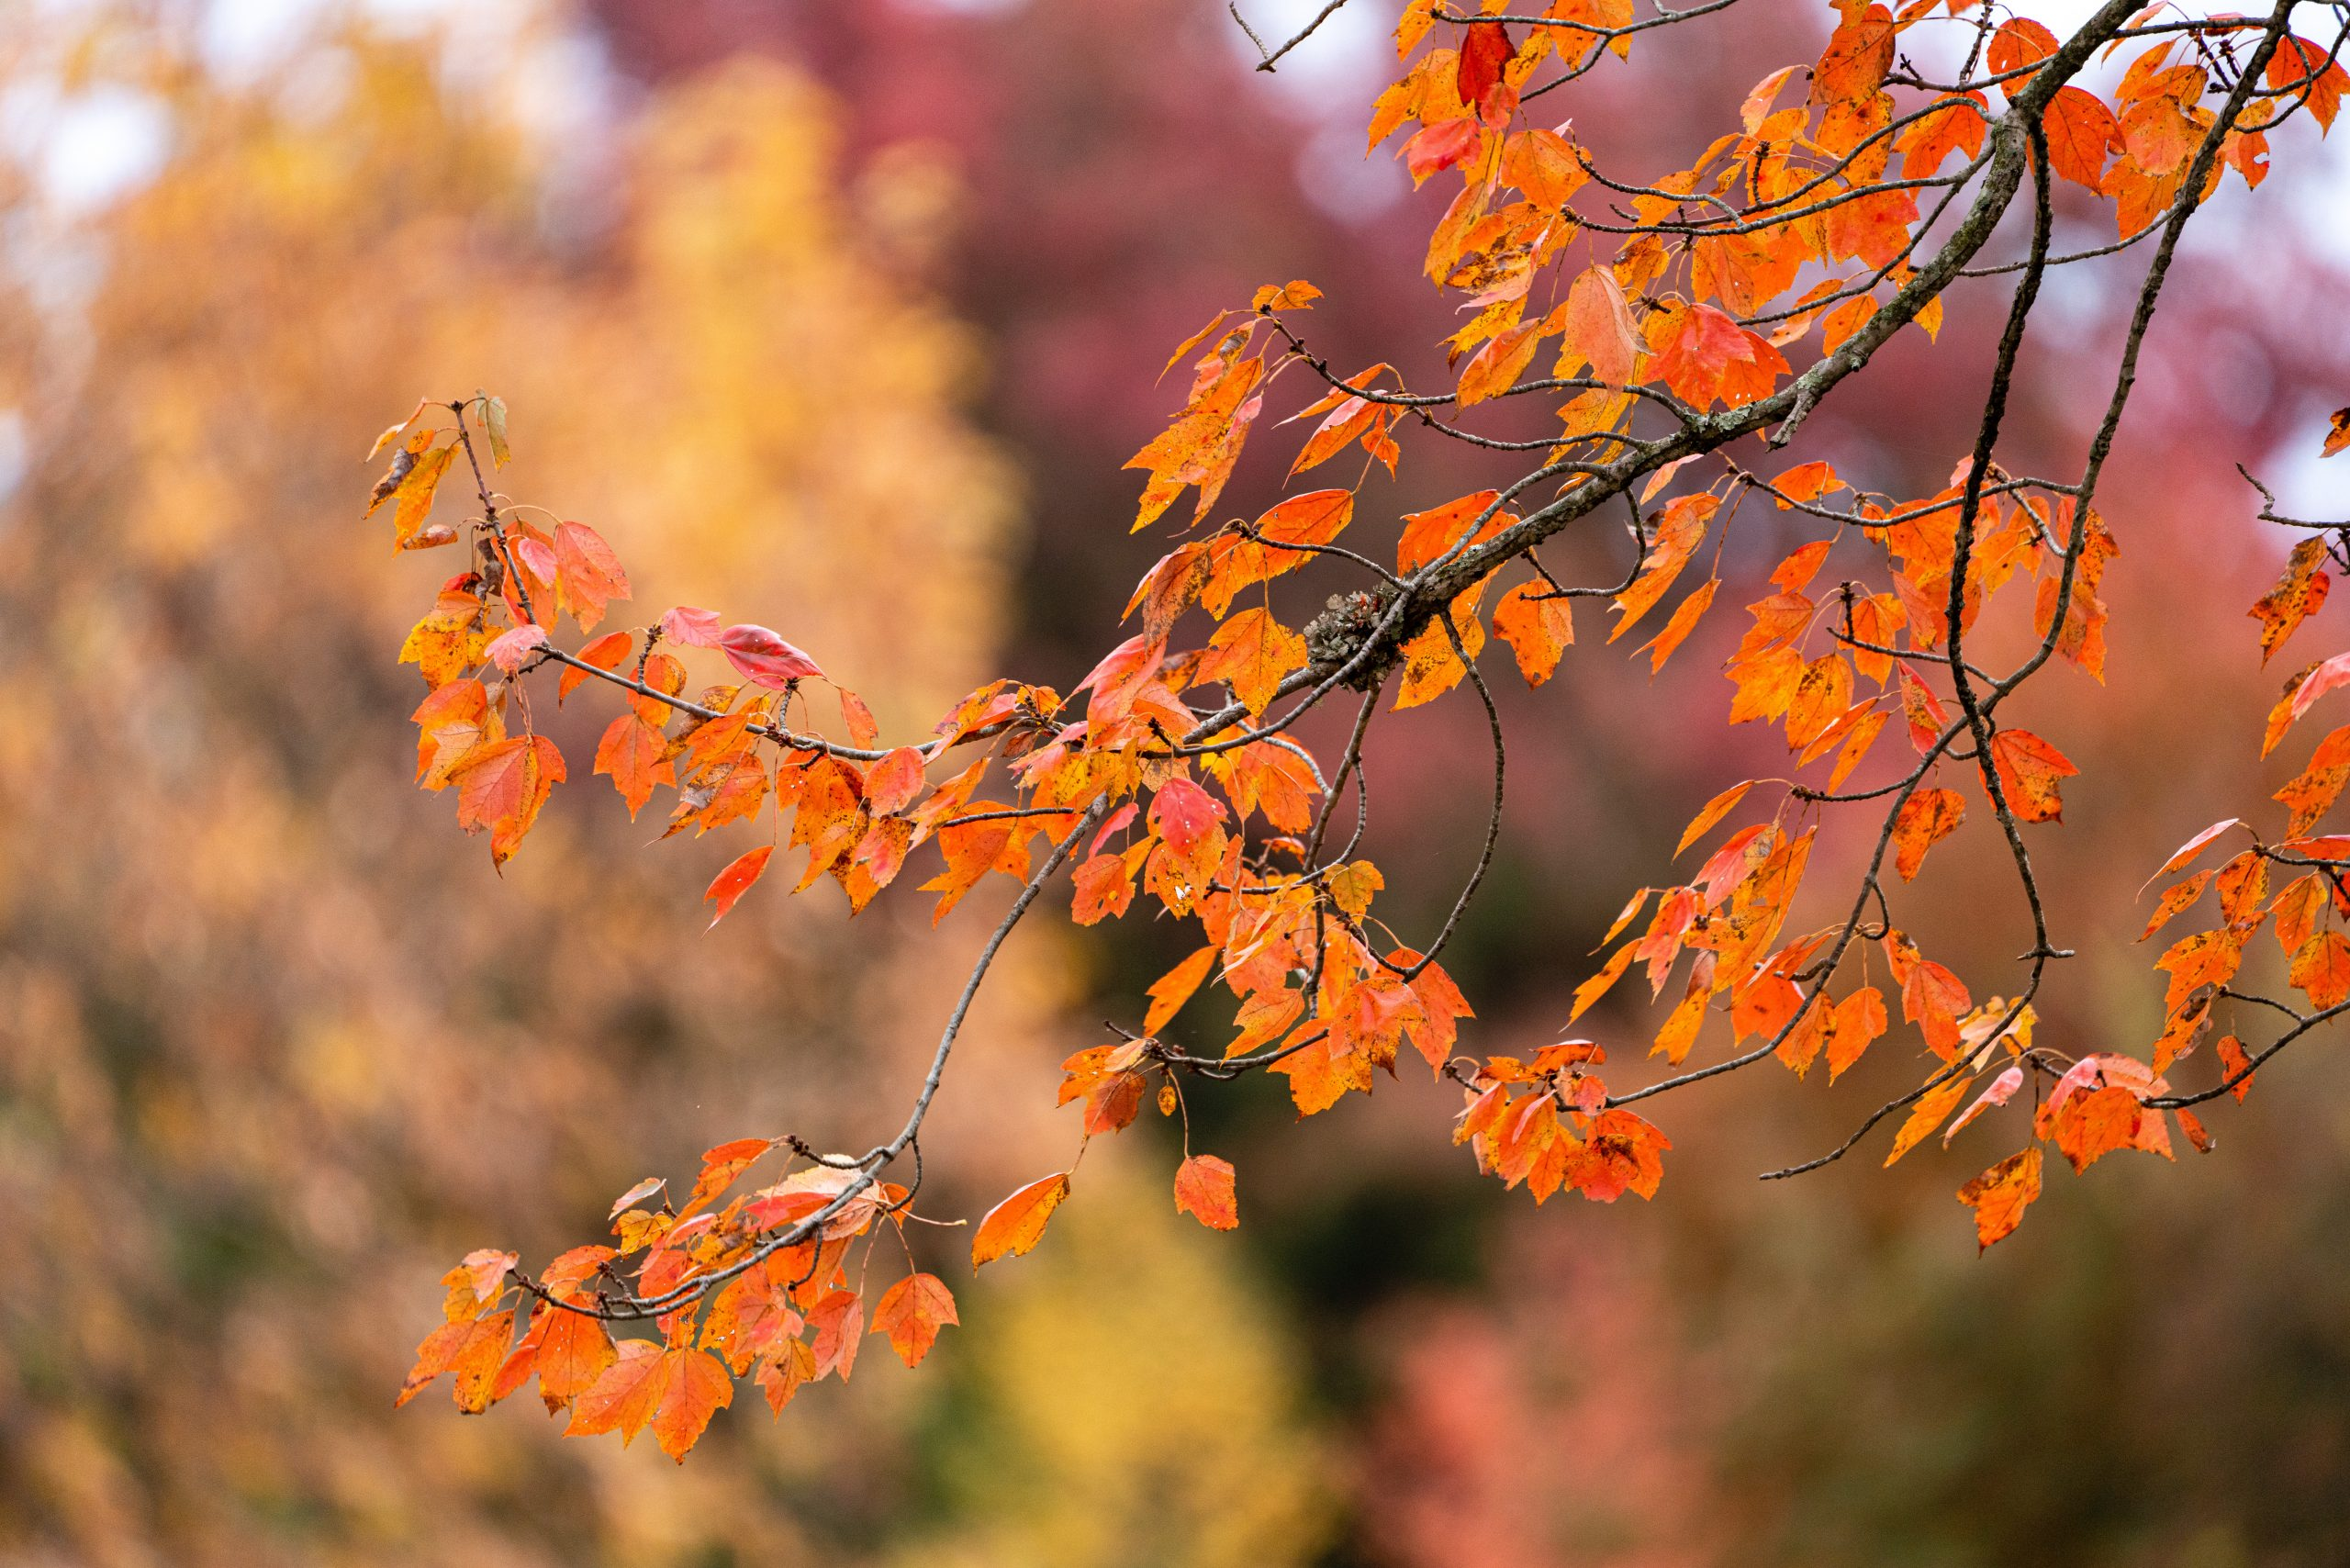 Orange leaves on tree branches.